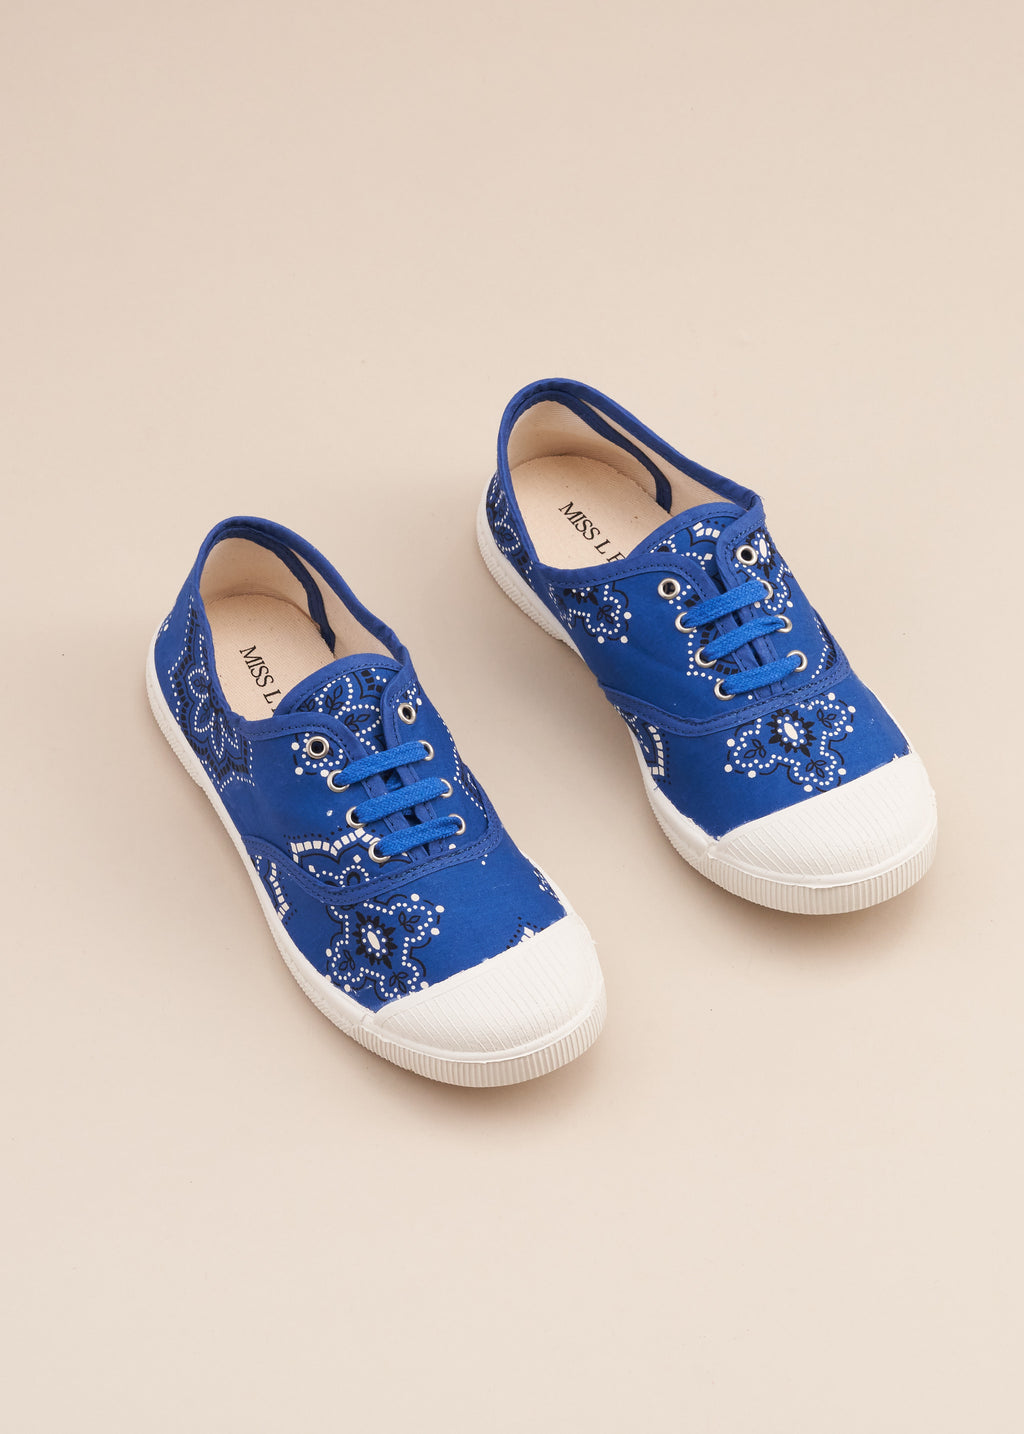 Adeline lo fi lace up sneaker in 1960's vintage blue bandana print cotton fabric. Vulcanised outsole. Limited edition. Made in Spain.